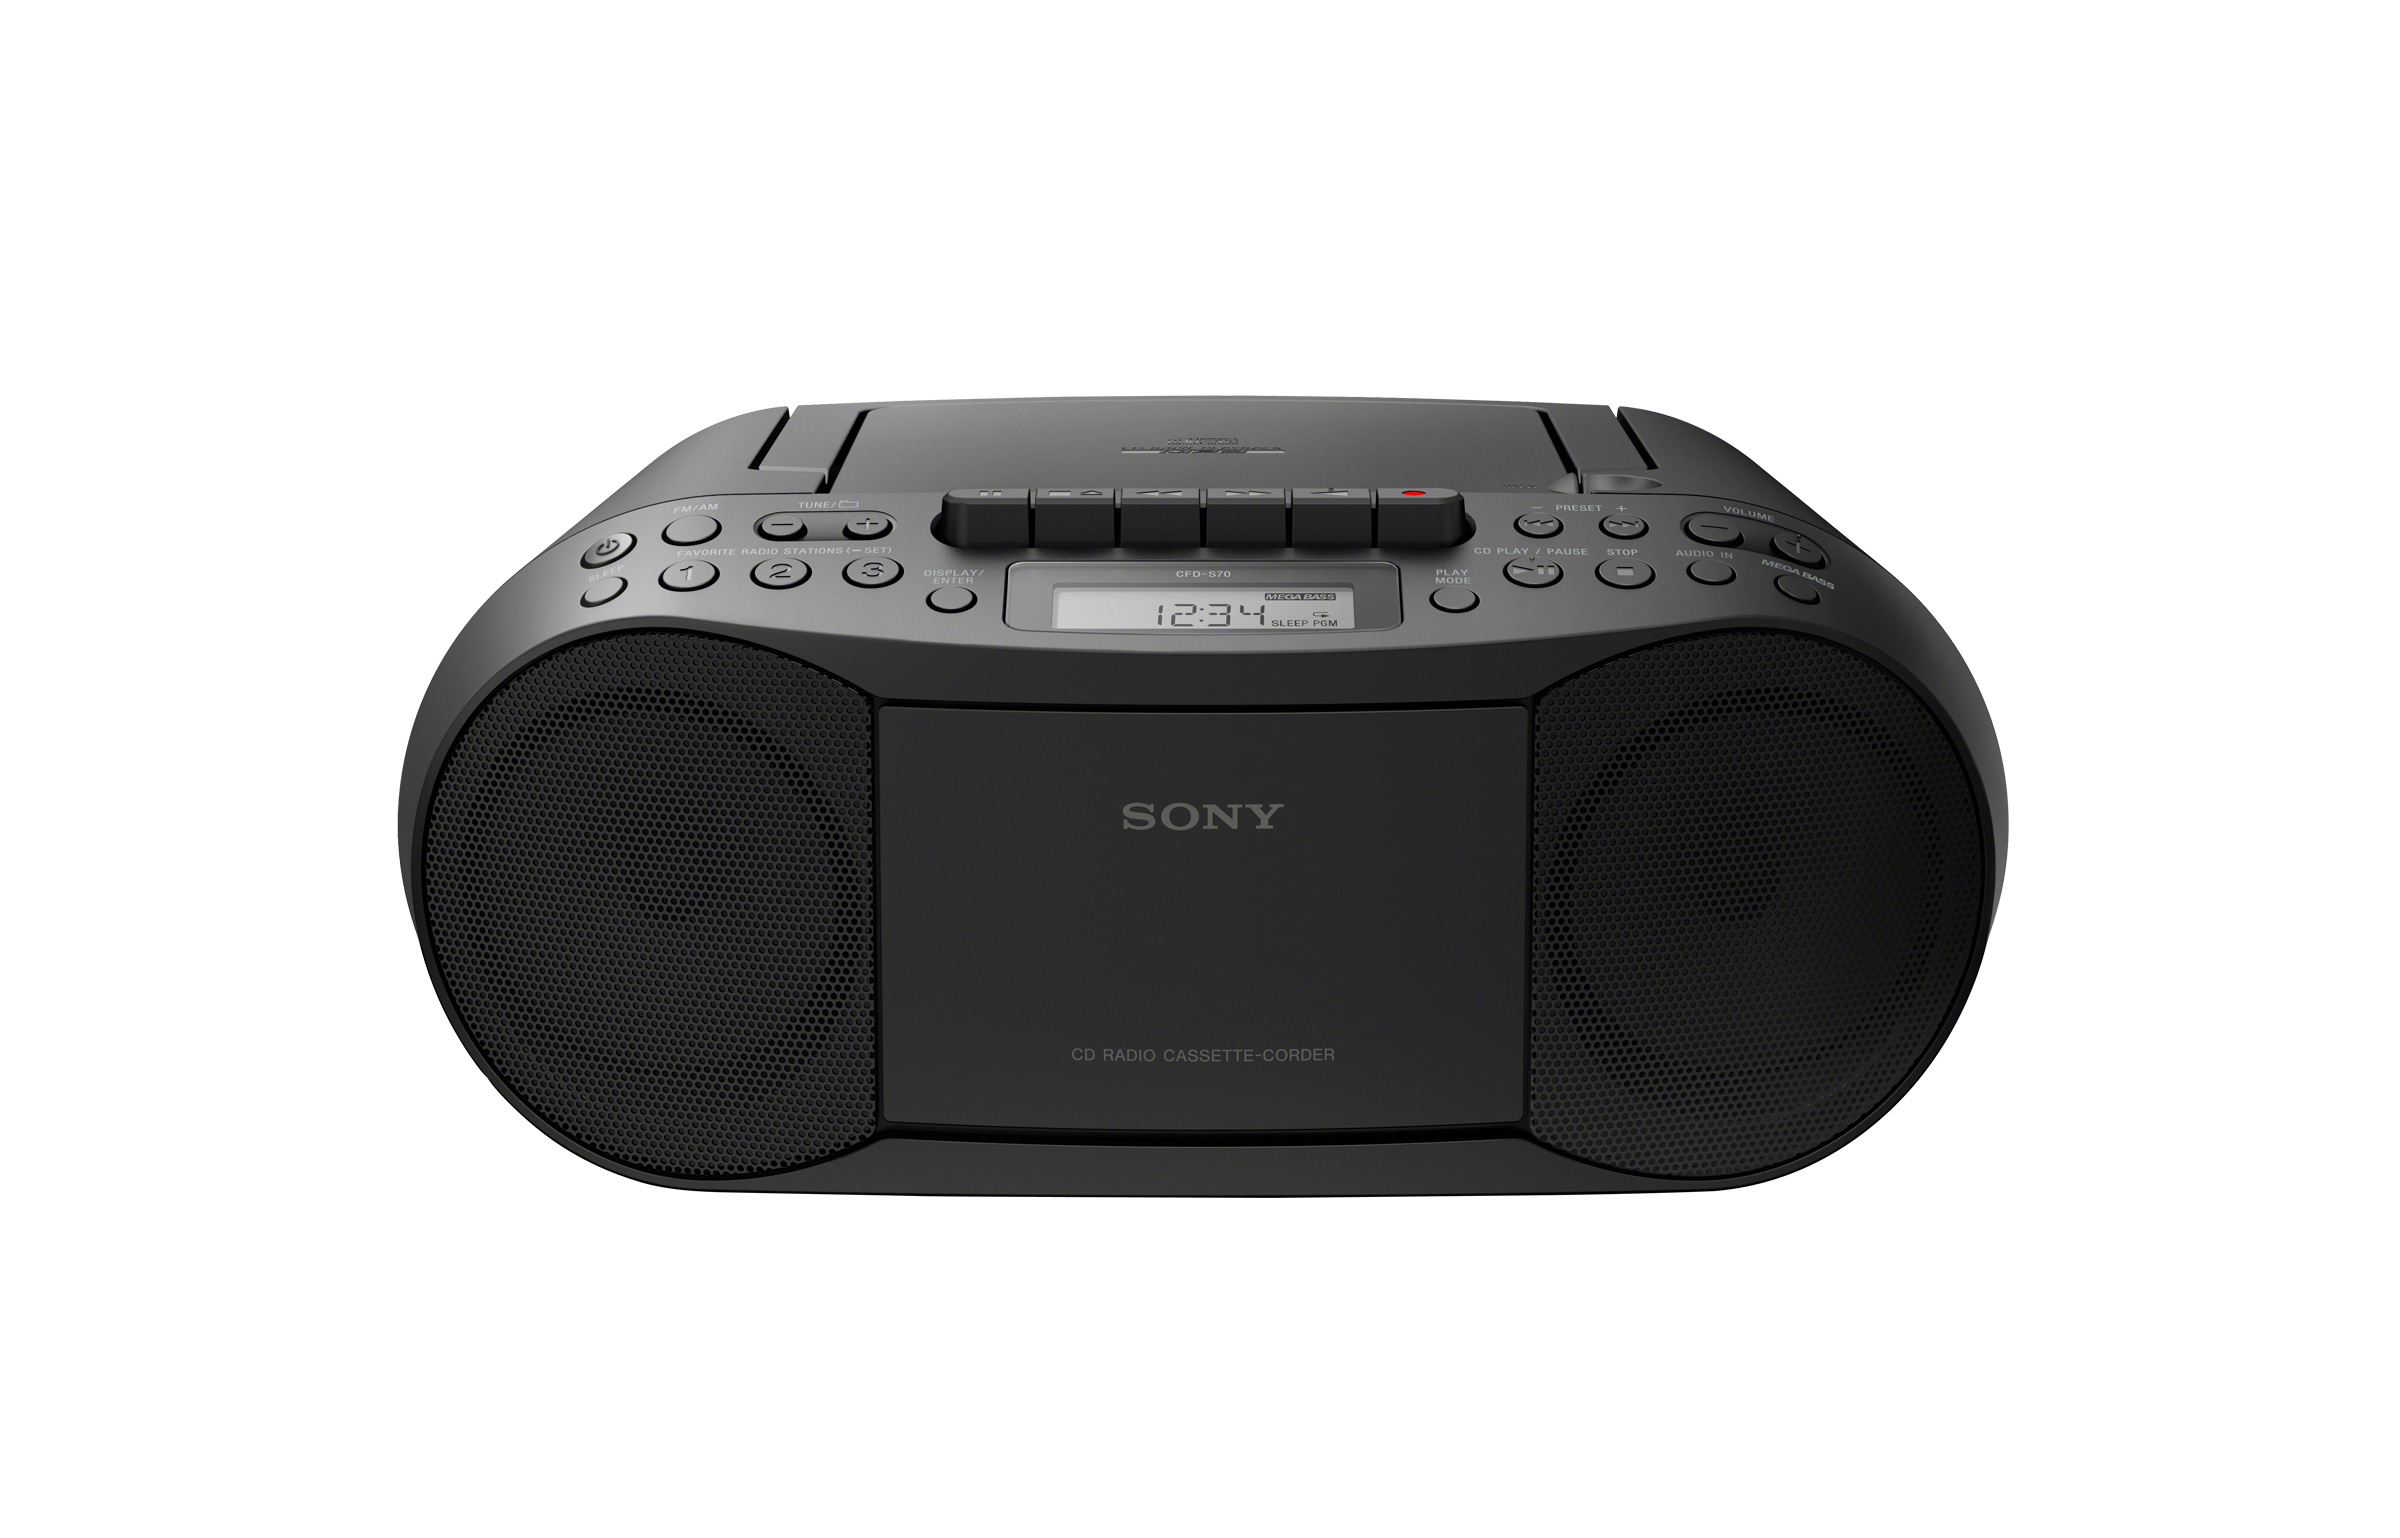 Sony CFDS70 Portable Boombox with CD  Cassette Player